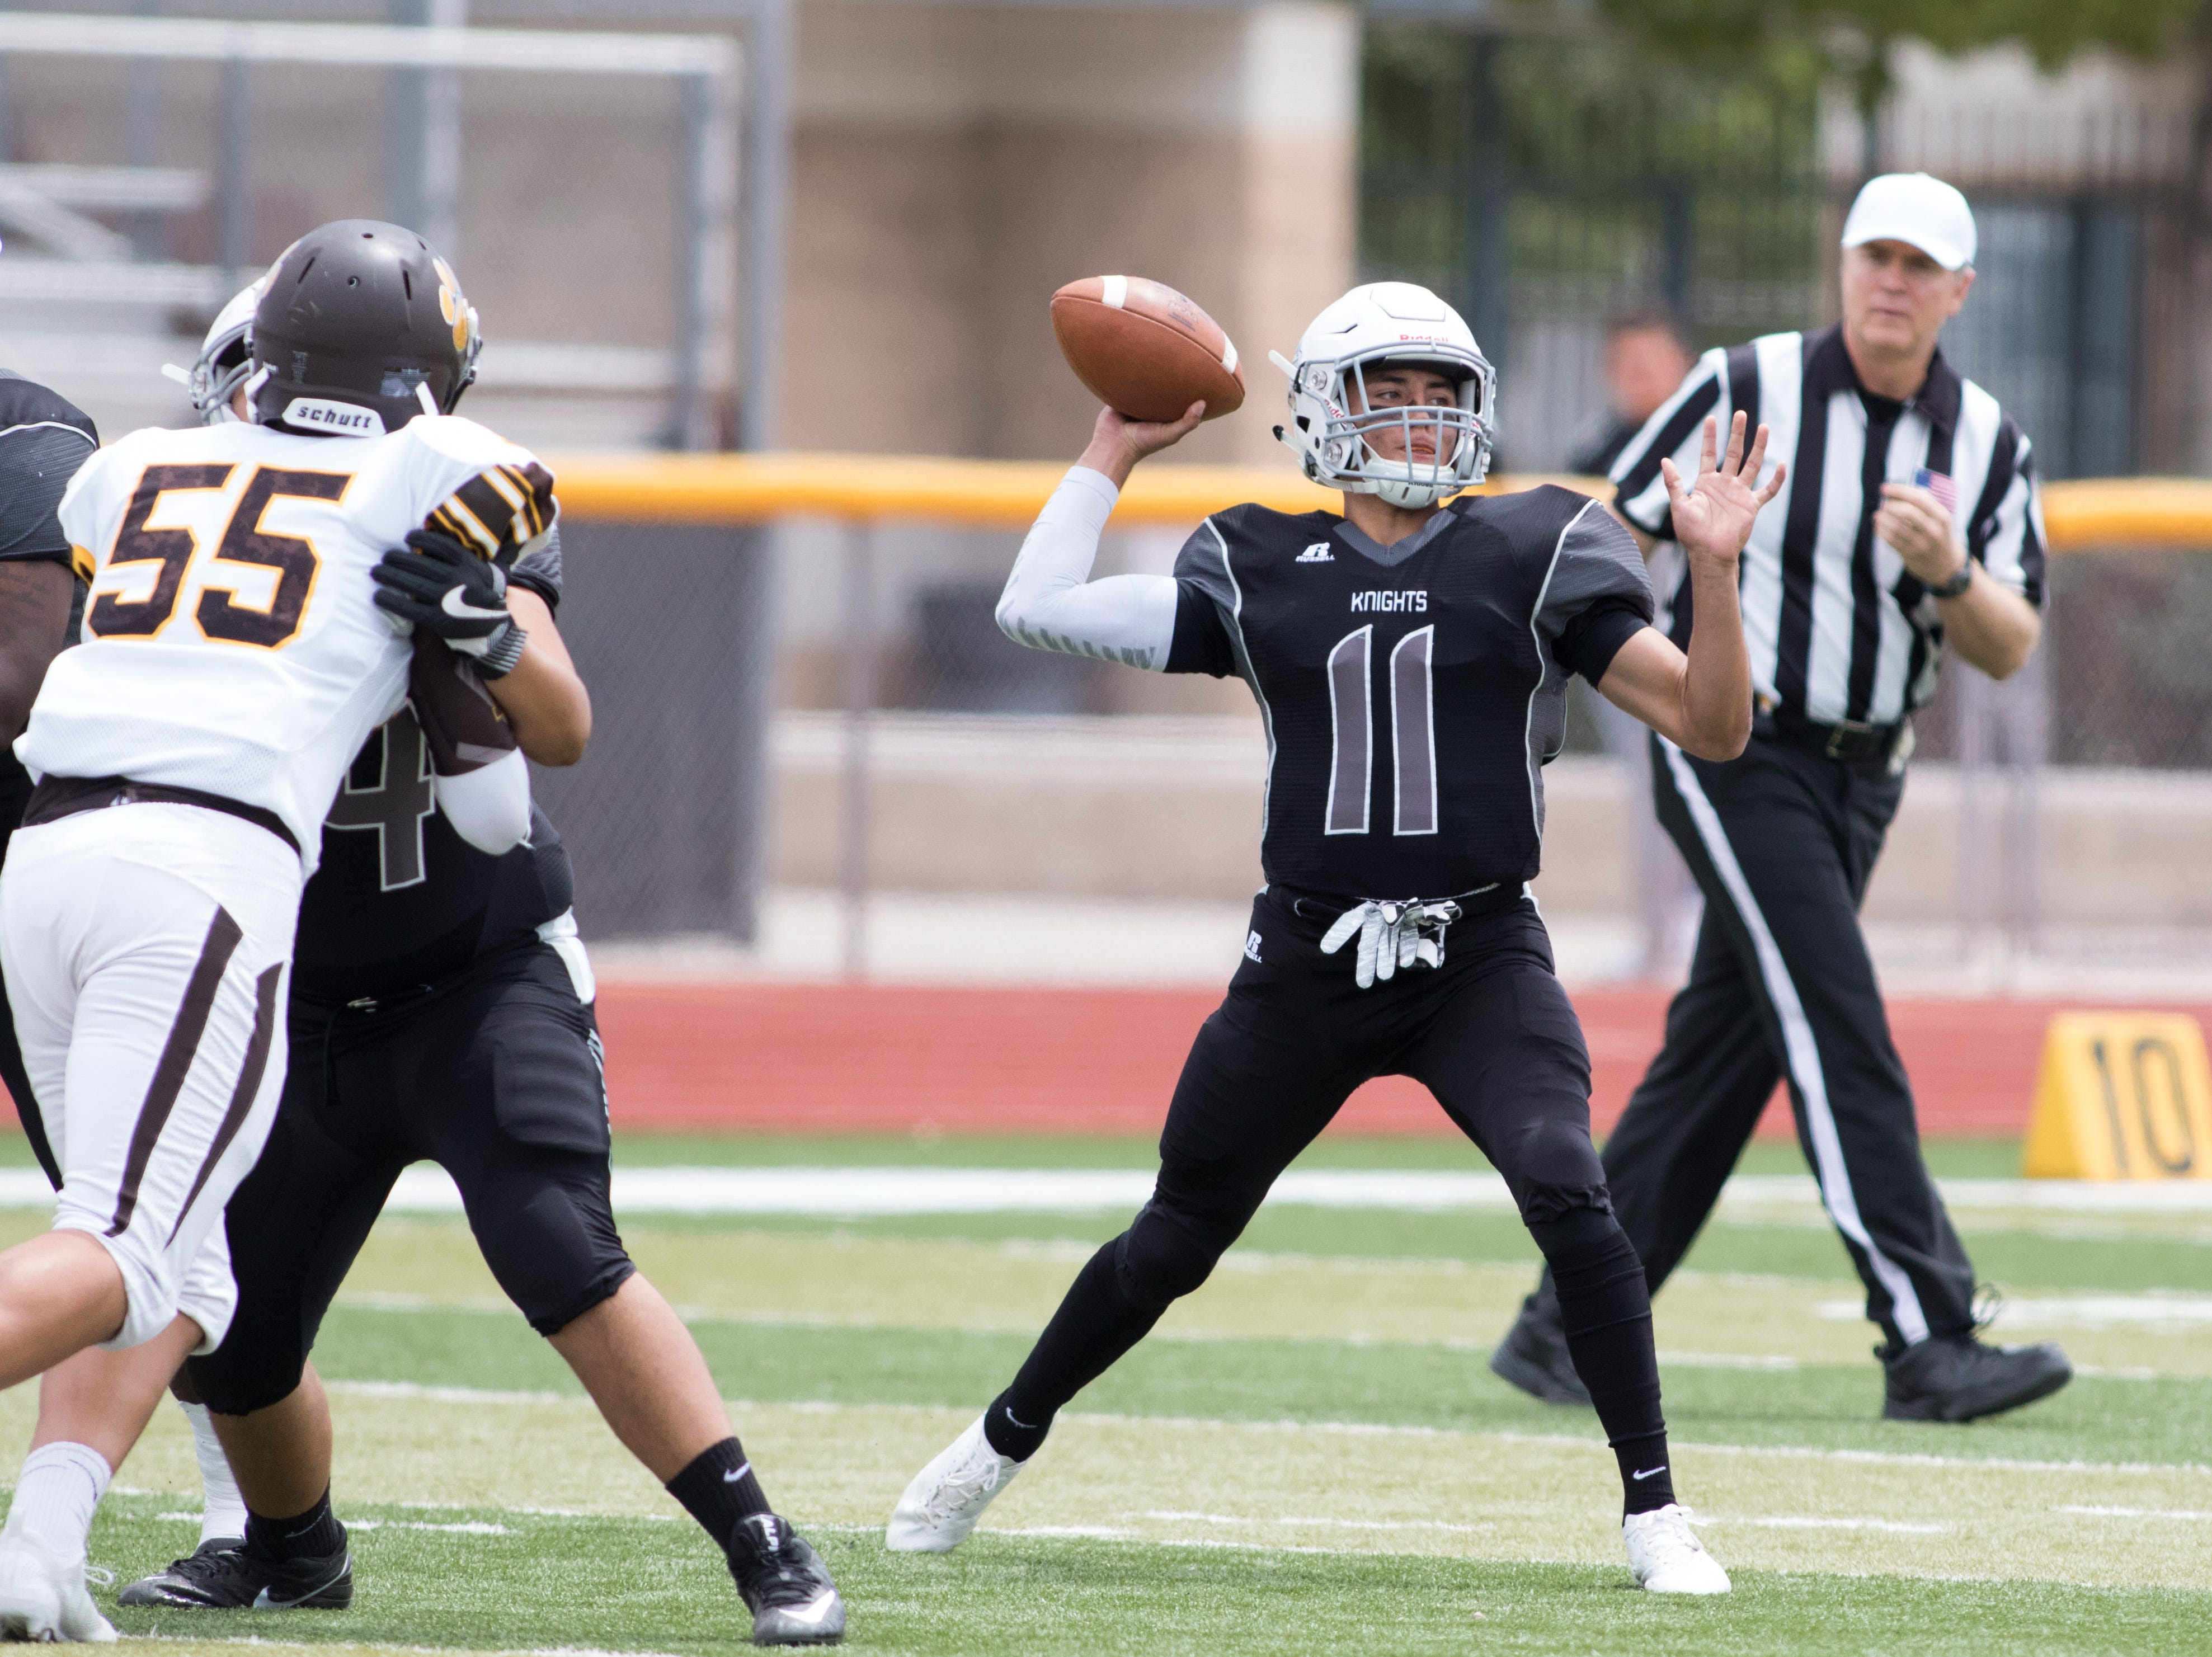 Onate Knight quarterback Jayden Diaz looks downfield to fire a pass during boys prep football against Cibola on September 1, 2018.